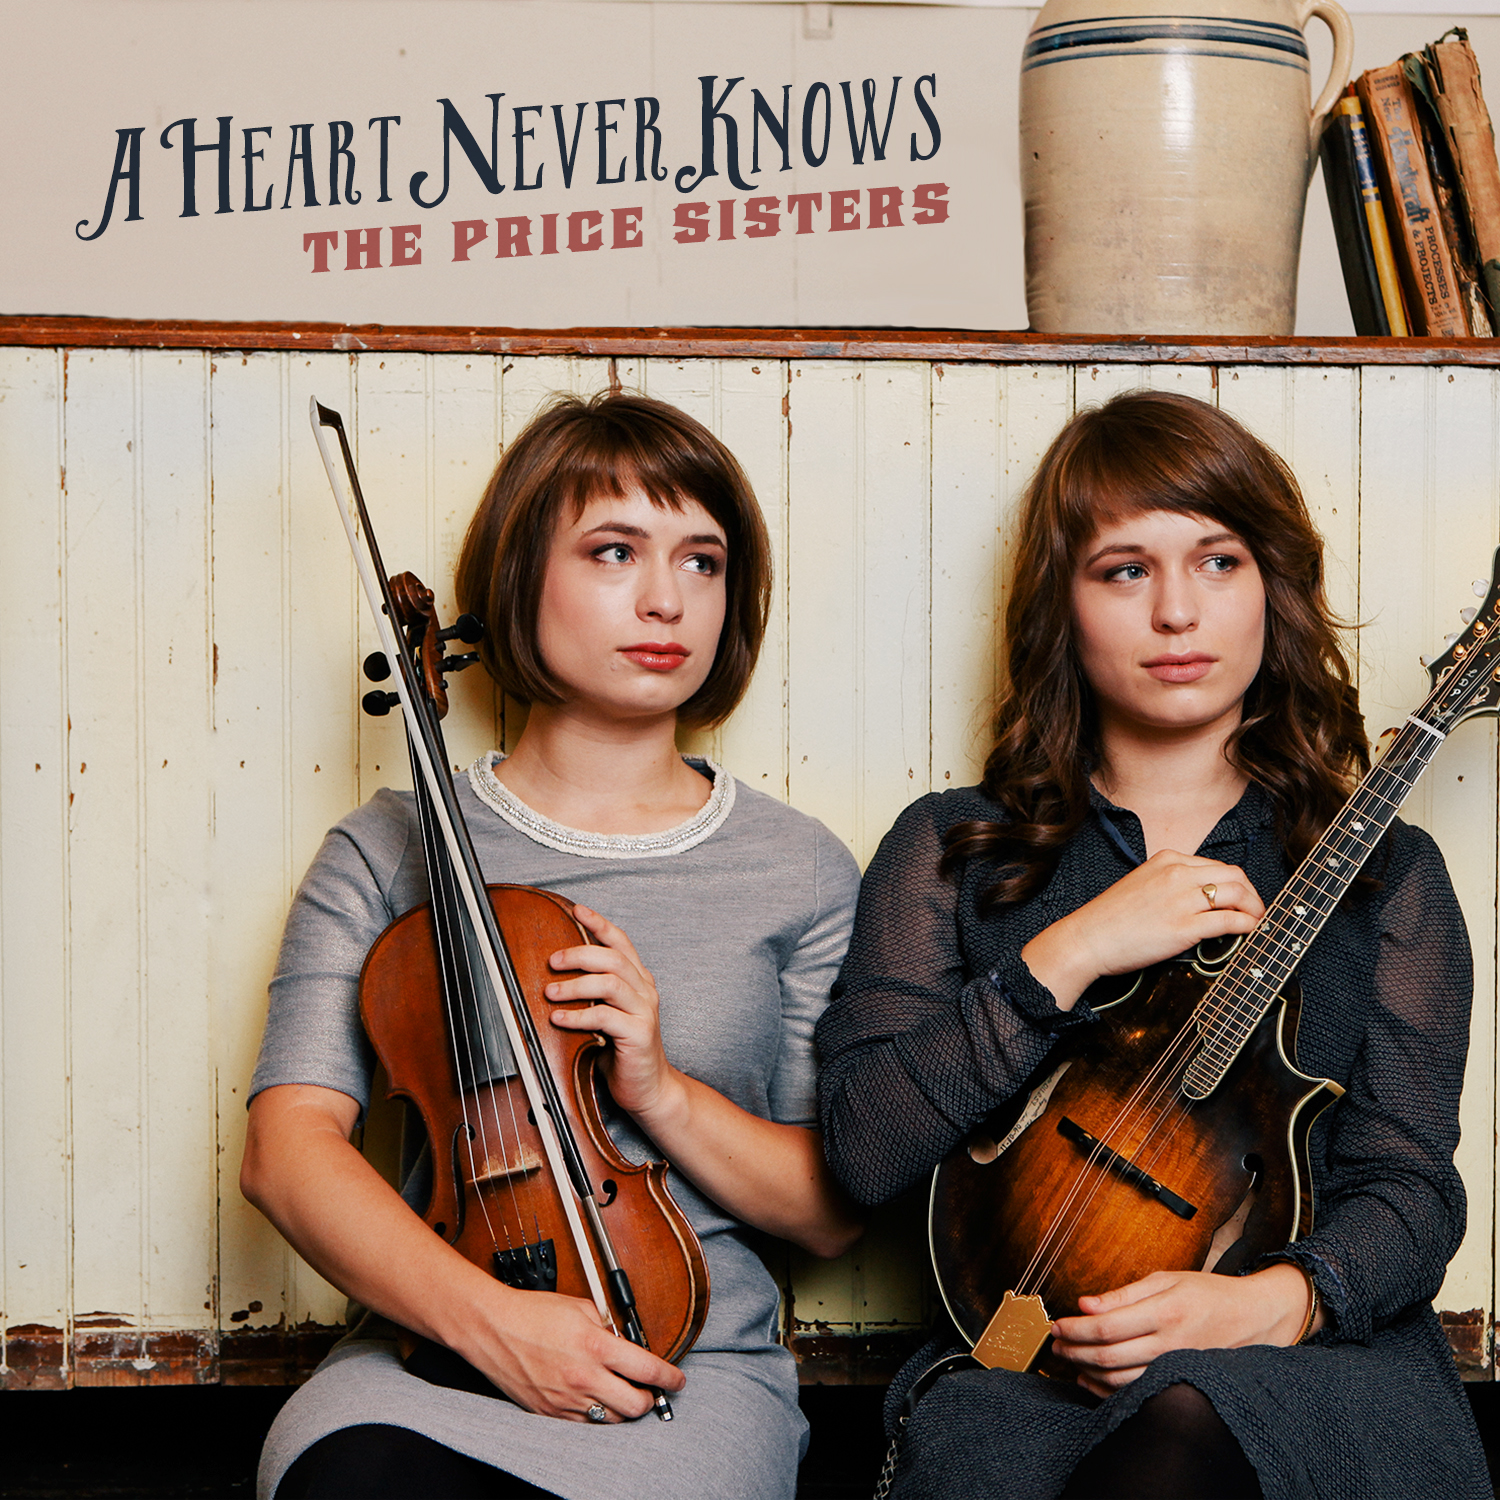 The Price Sisters - A Heart Never Knows